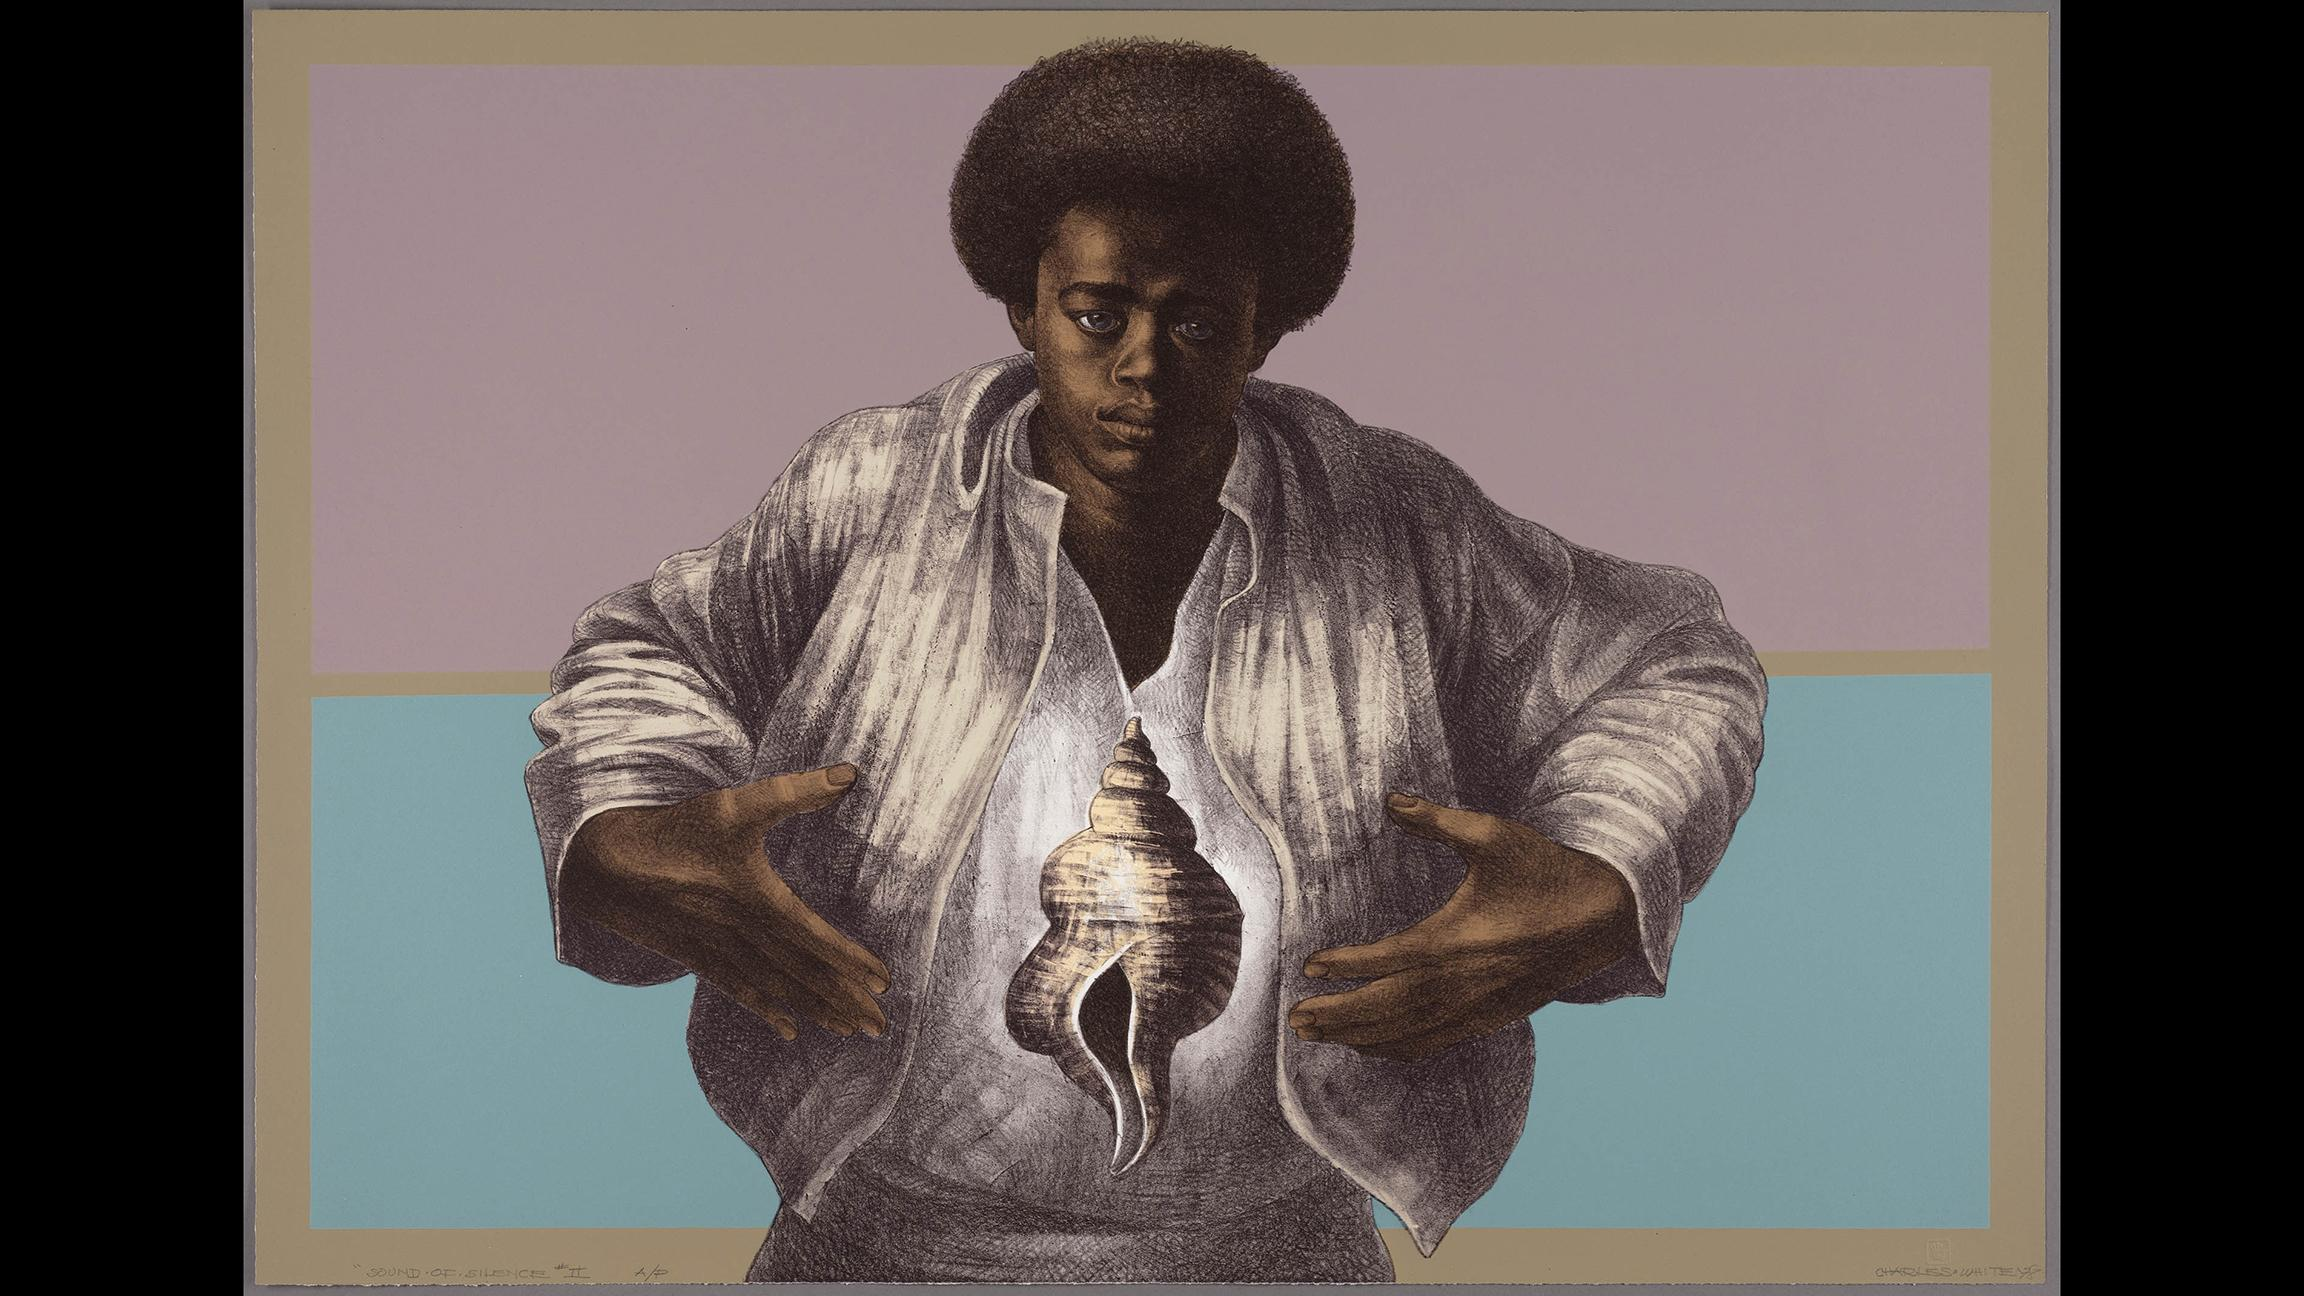 "Charles White, printed by David Panosh, published by Hand Graphics, Ltd. ""Sound of Silence,"" 1978. The Art Institute of Chicago, Margaret Fisher Fund. (© The Charles White Archives Inc.)"